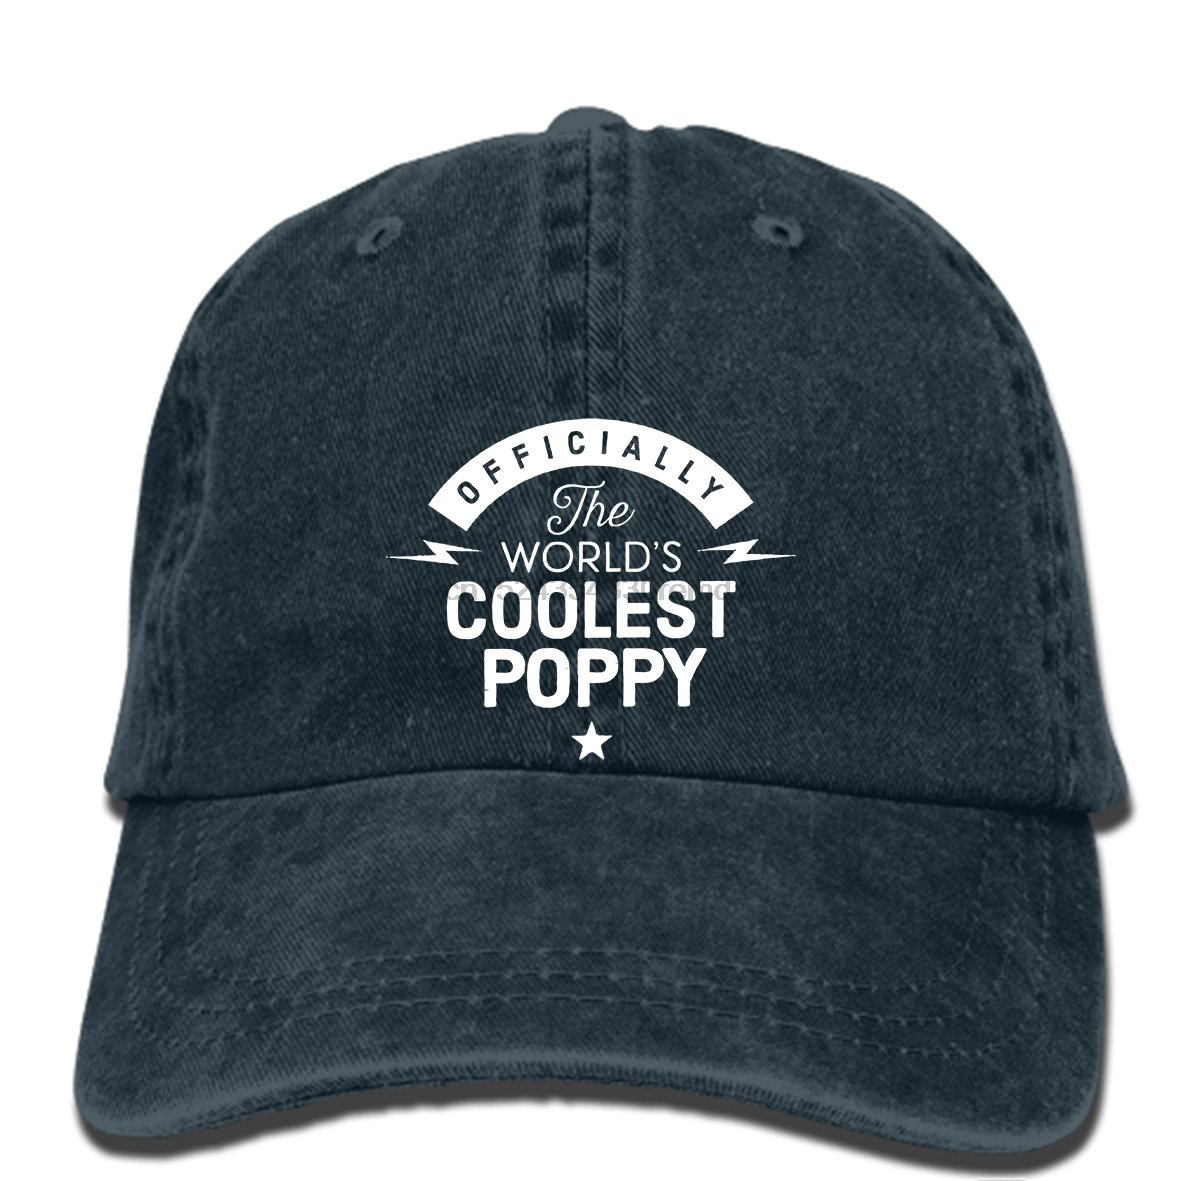 6202f3f1b11 hip hop Baseball caps Personalised Worlds Greatest Poppy Happy Birthday hat  Gift Present cap Funny Print Summer-in Baseball Caps from Apparel  Accessories on ...